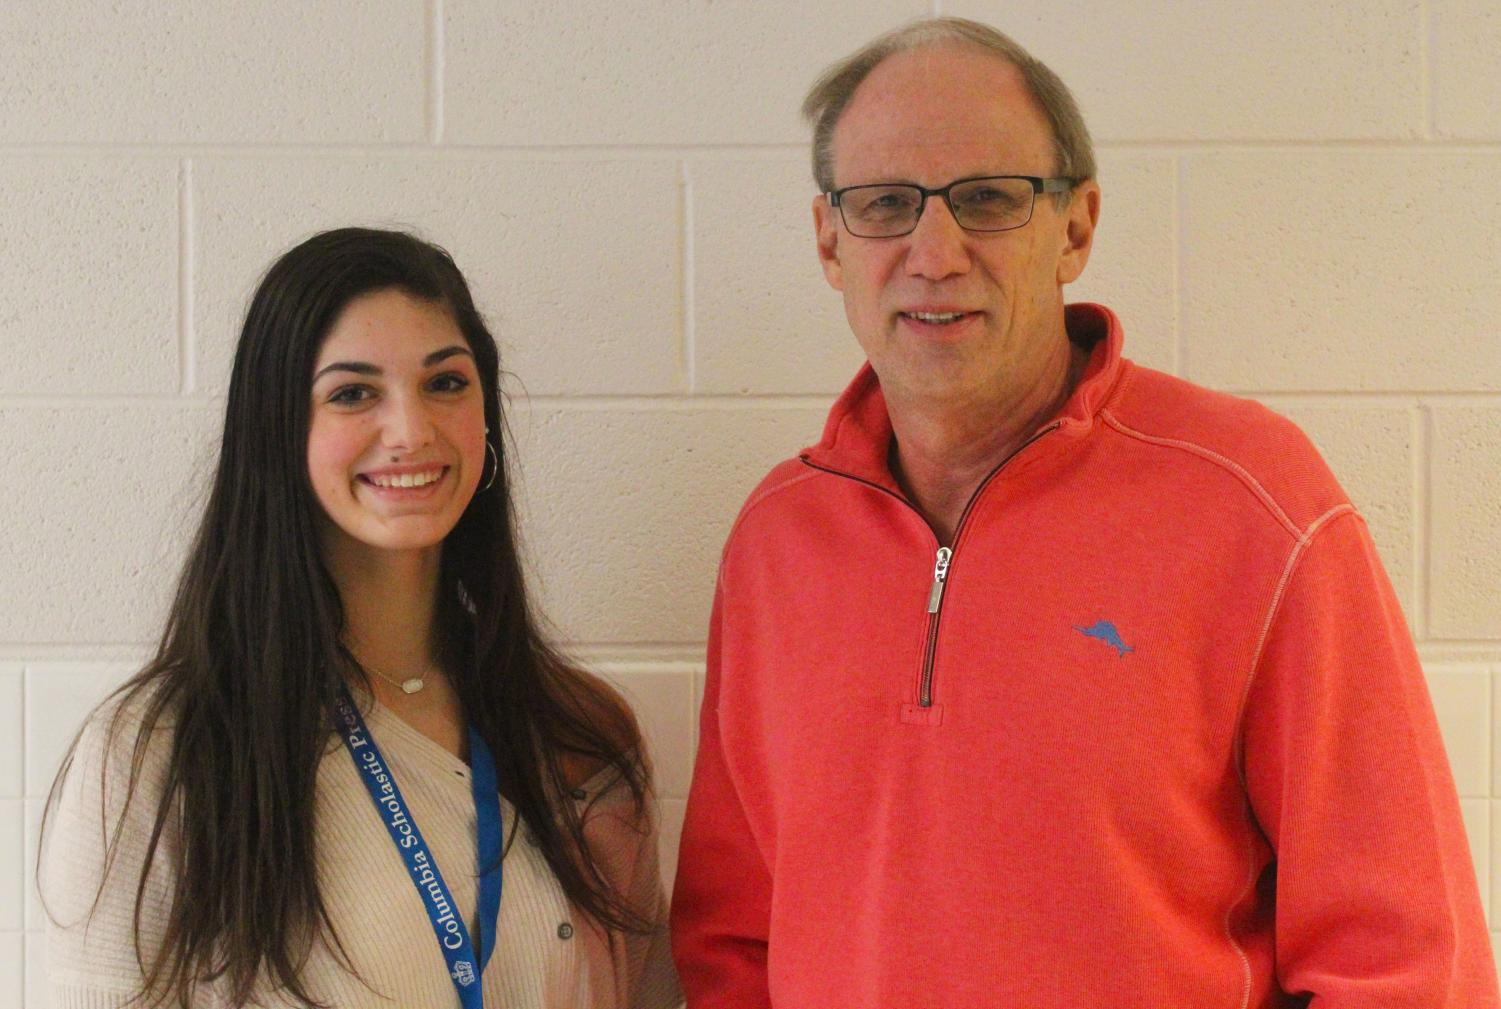 Photo of Mr. Campbell and sports Maddy McFarlin, courtesy of staff photographer Ben Zalles